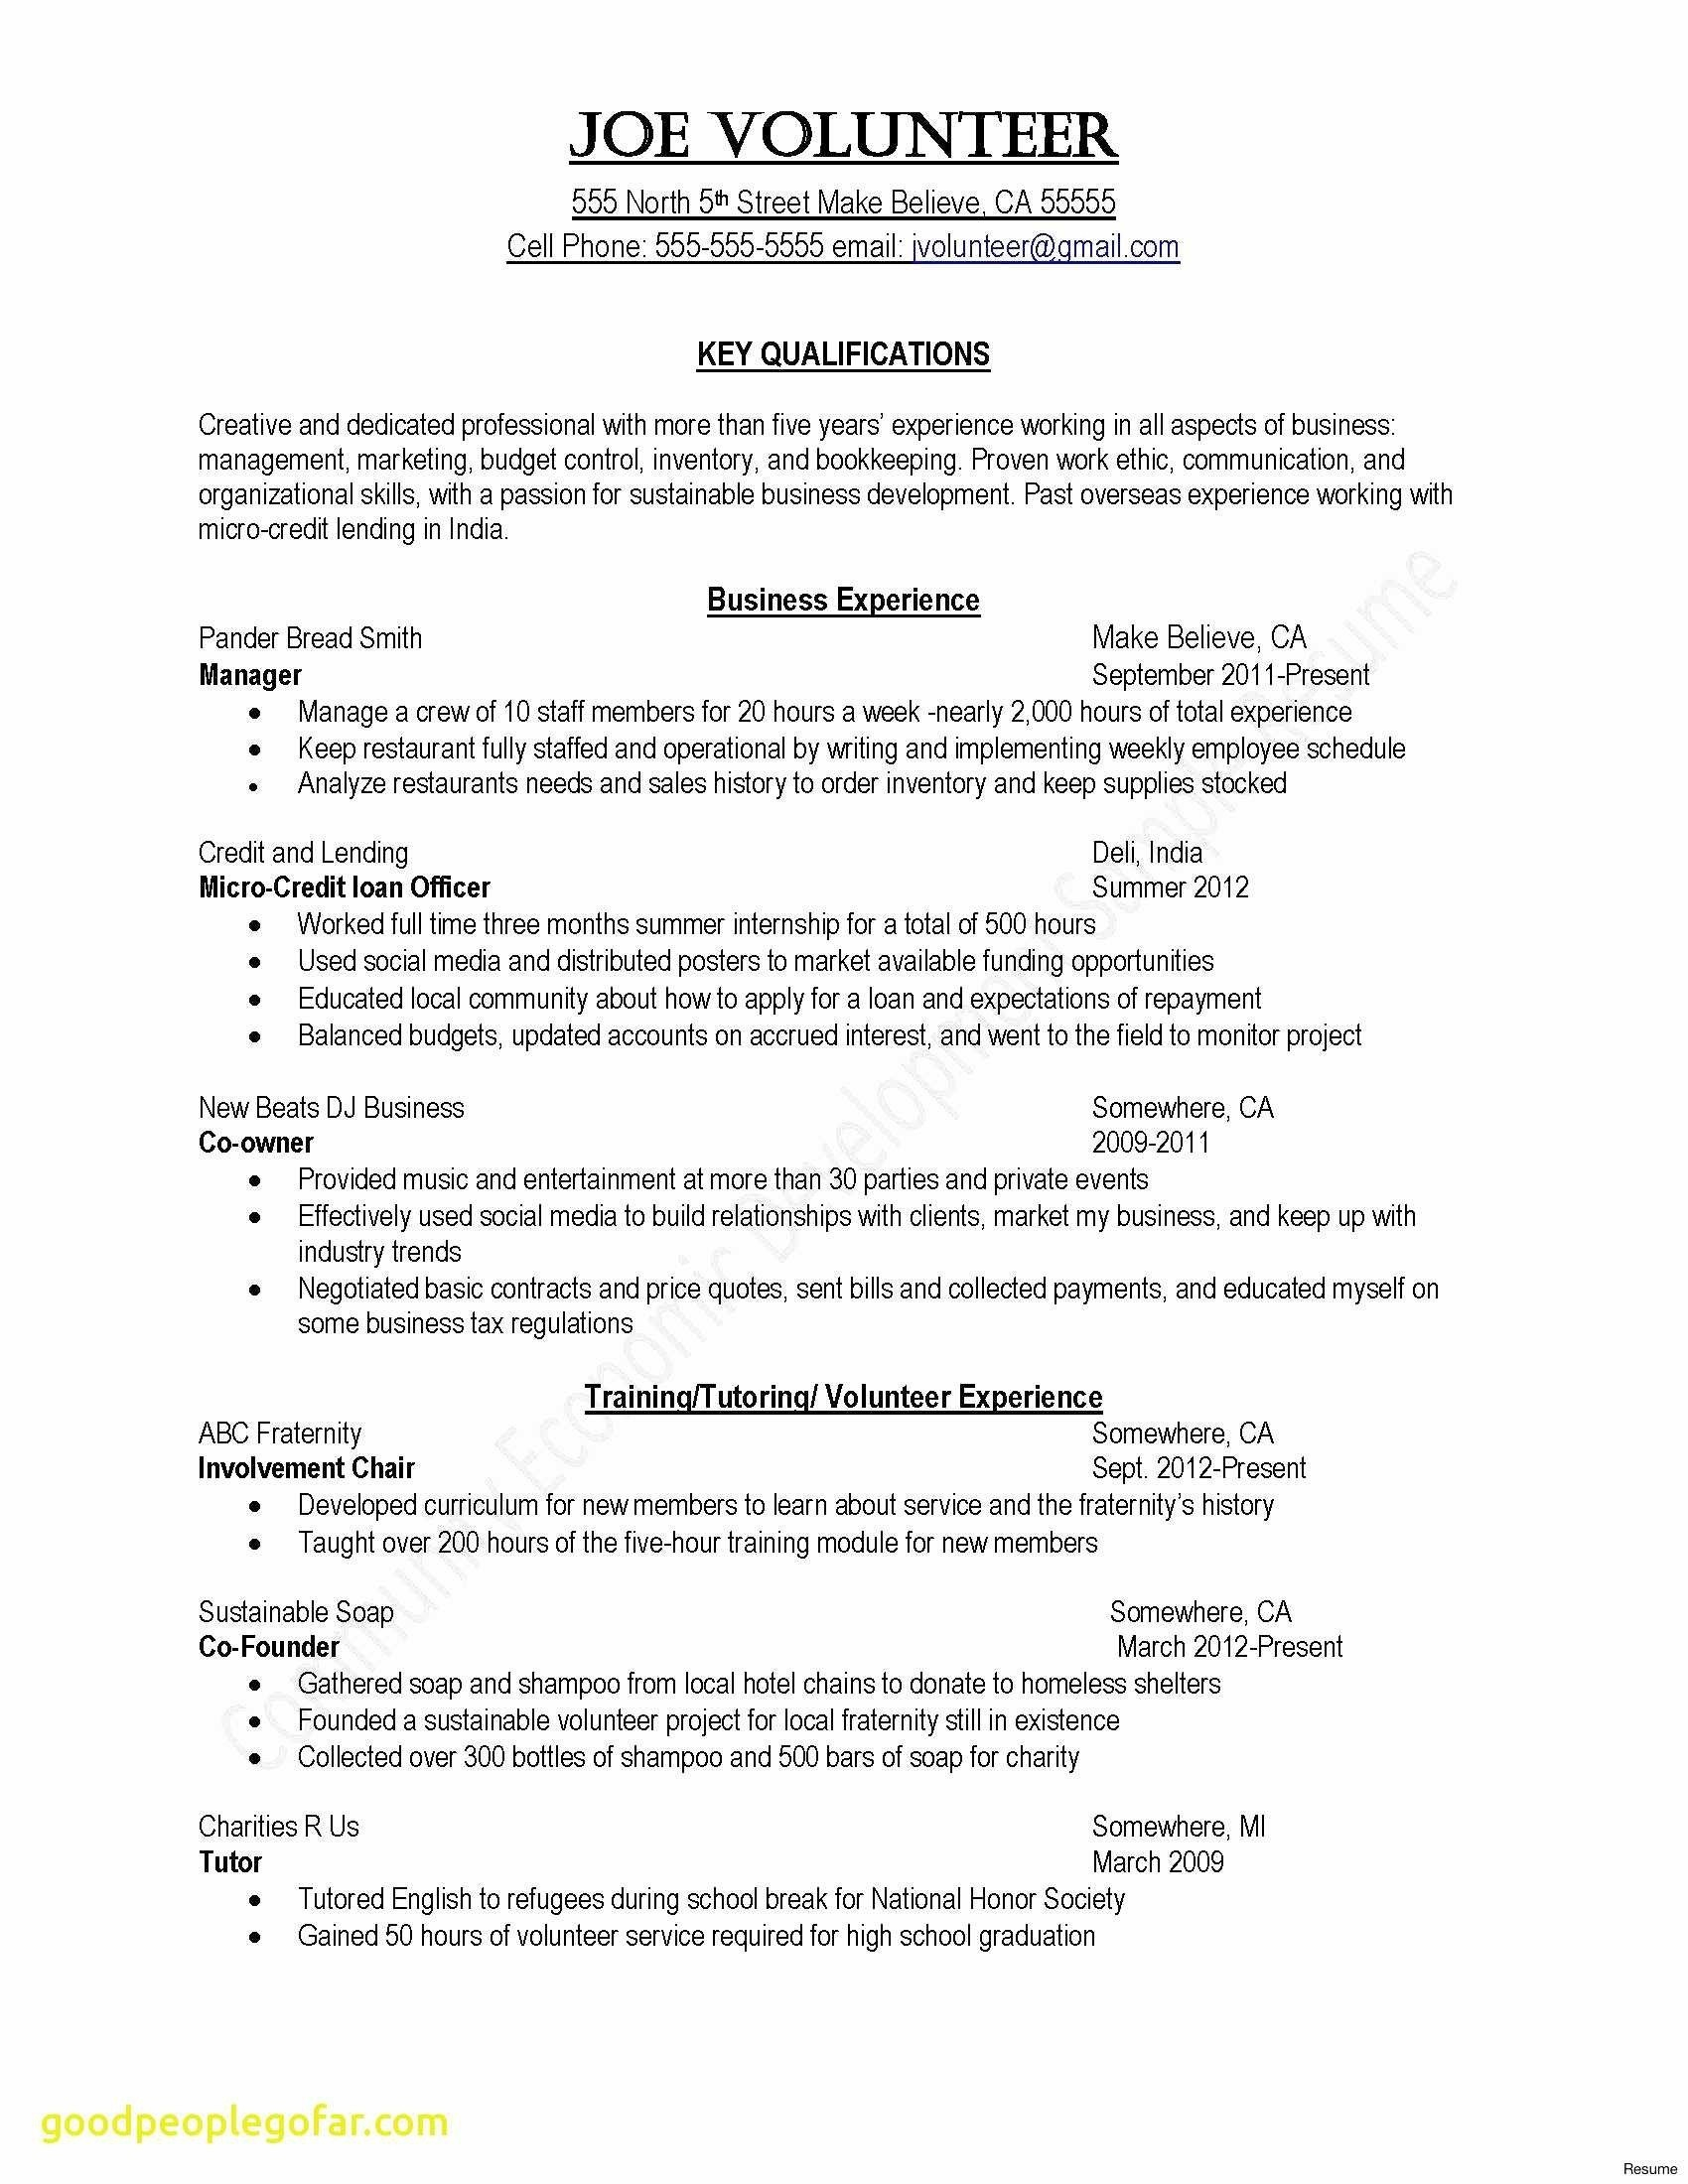 Adjectives for Resumes - Self Descriptive Words for Resume